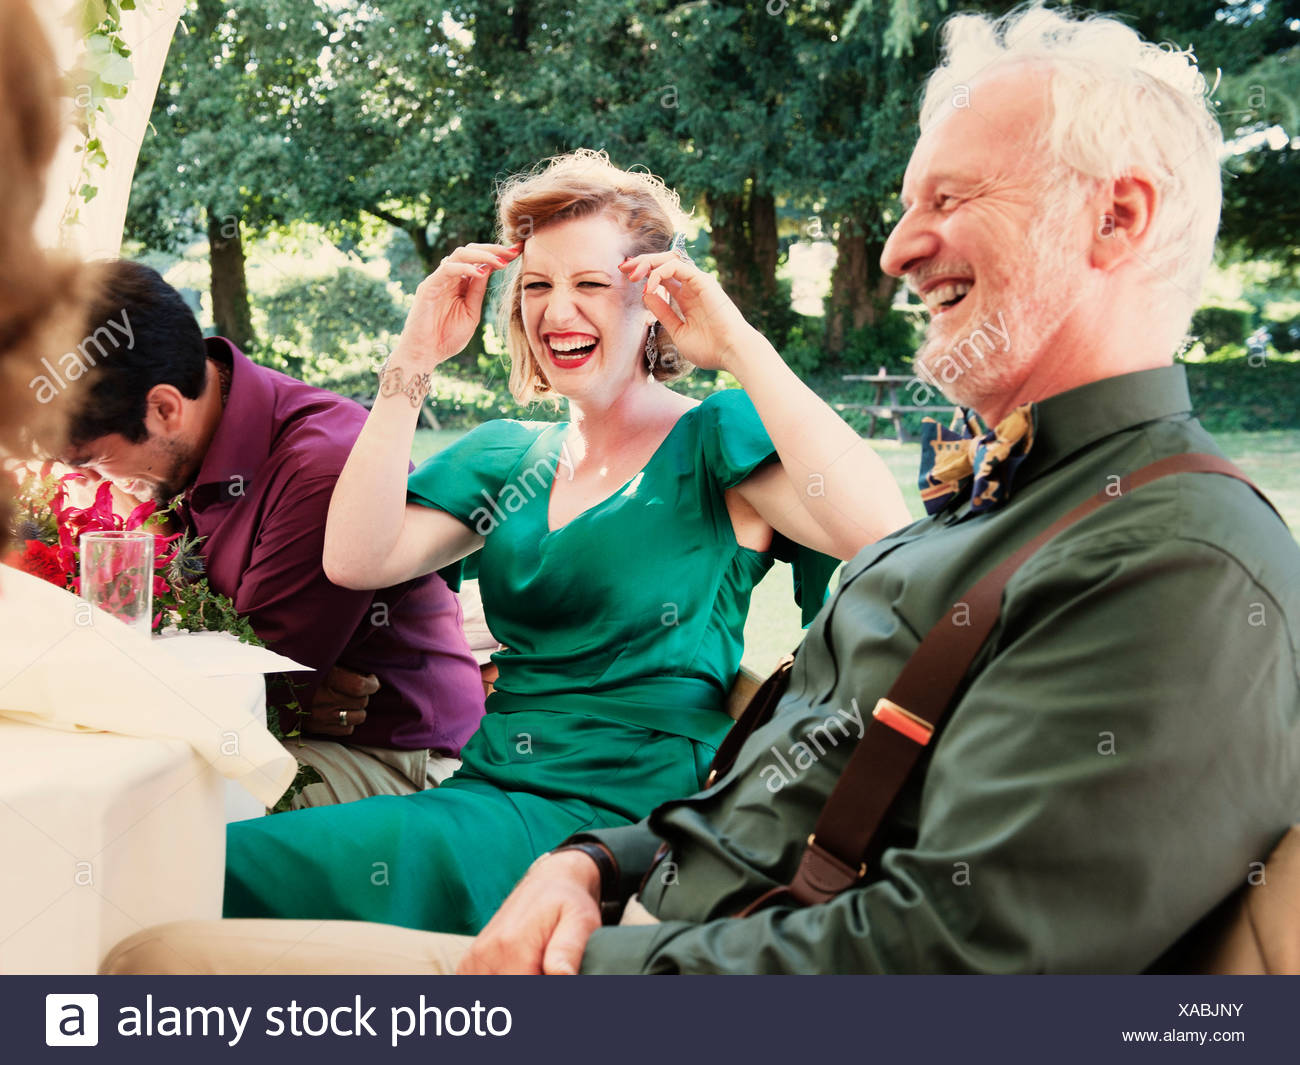 Newly married couple with parents laughing at wedding reception - Stock Image